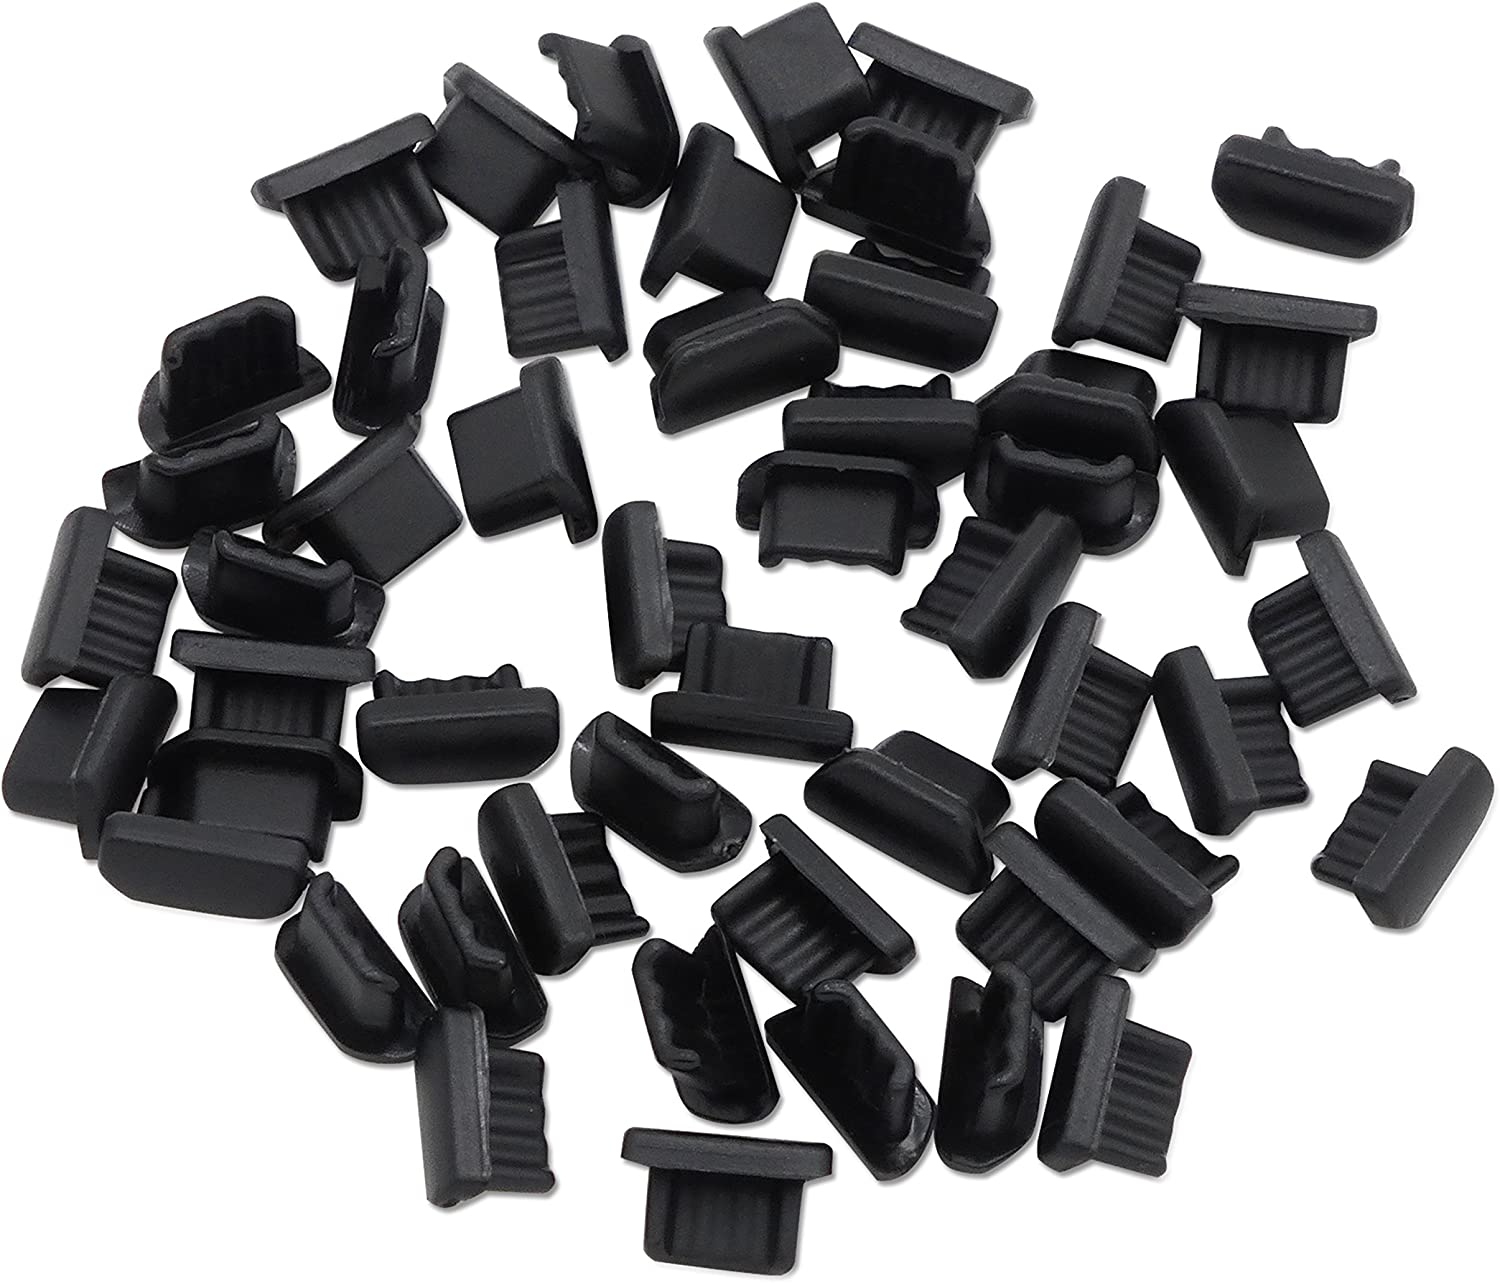 PortPlugs Micro USB Anti Dust with 50-Pack Free Award Shipping New Al Compatible Plugs